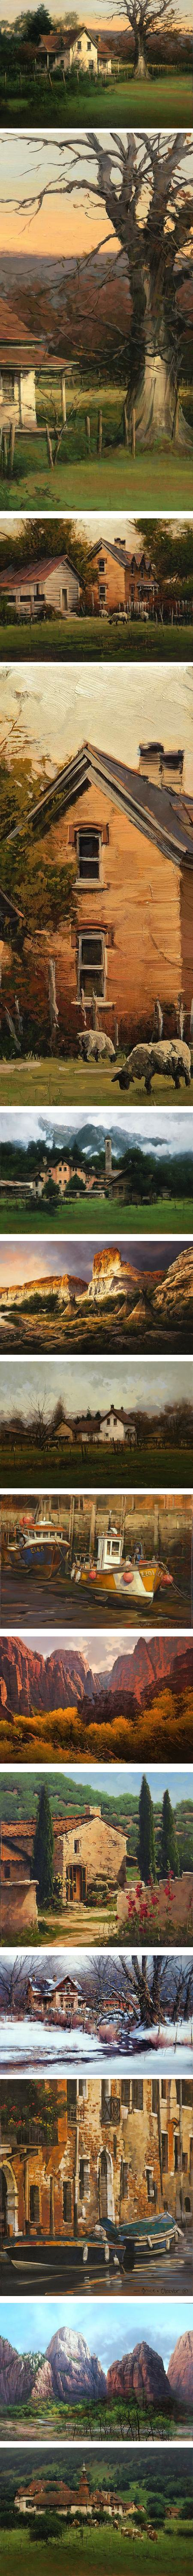 Bruce Cheever, landscape painting